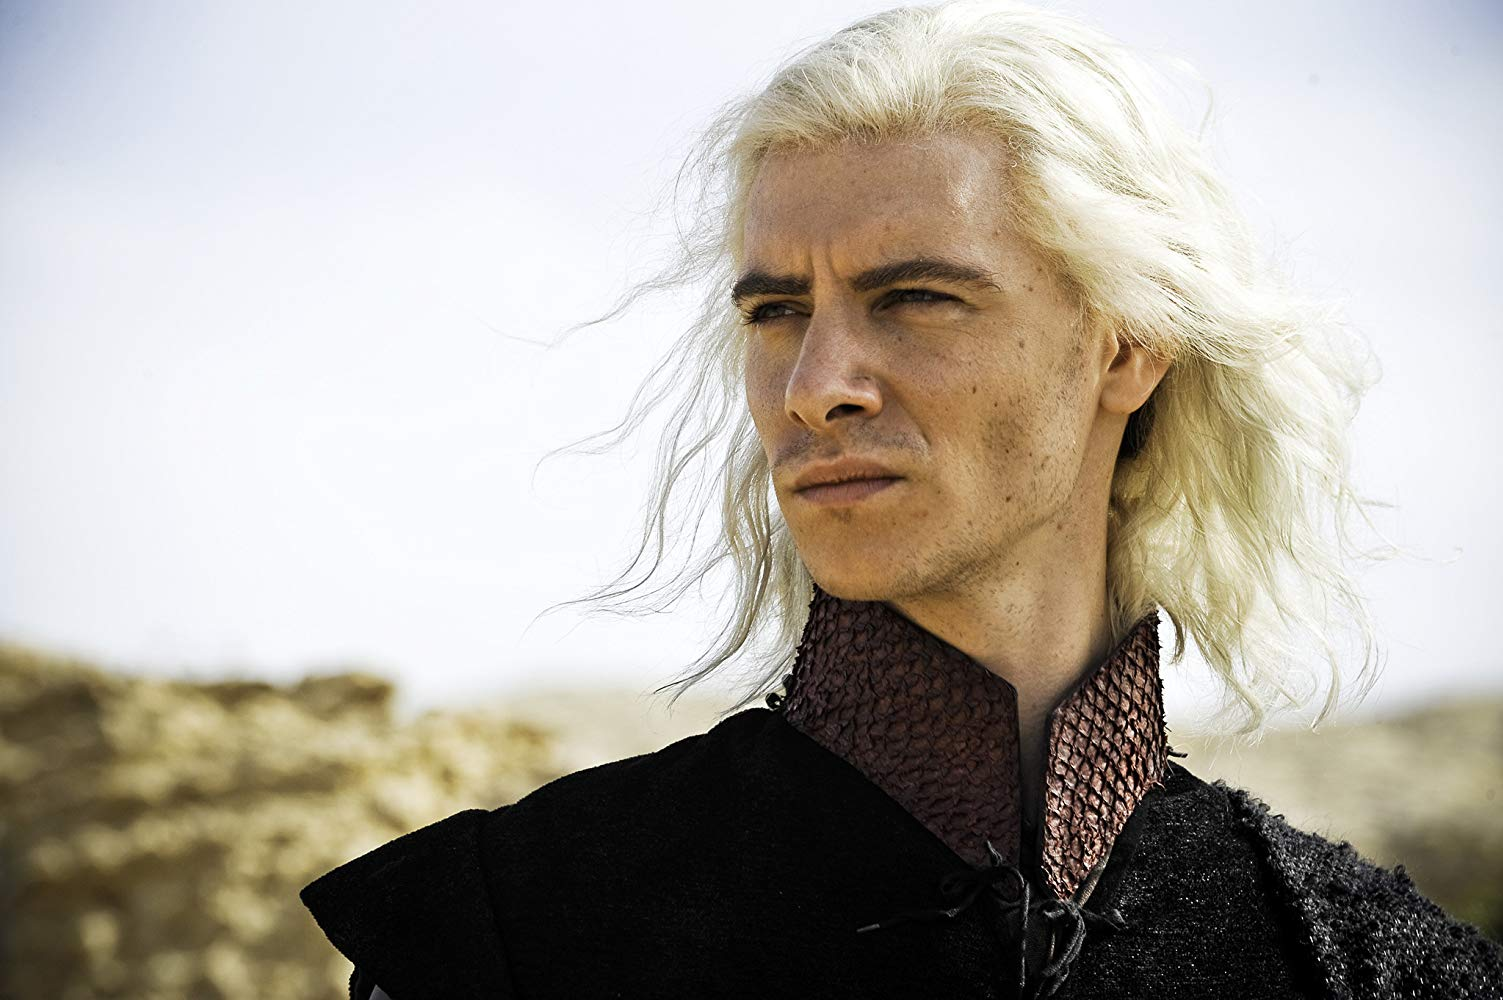 Harry Lloyd as Viserys Targaryen in 'Game of Thrones'. (Source: IMDB)